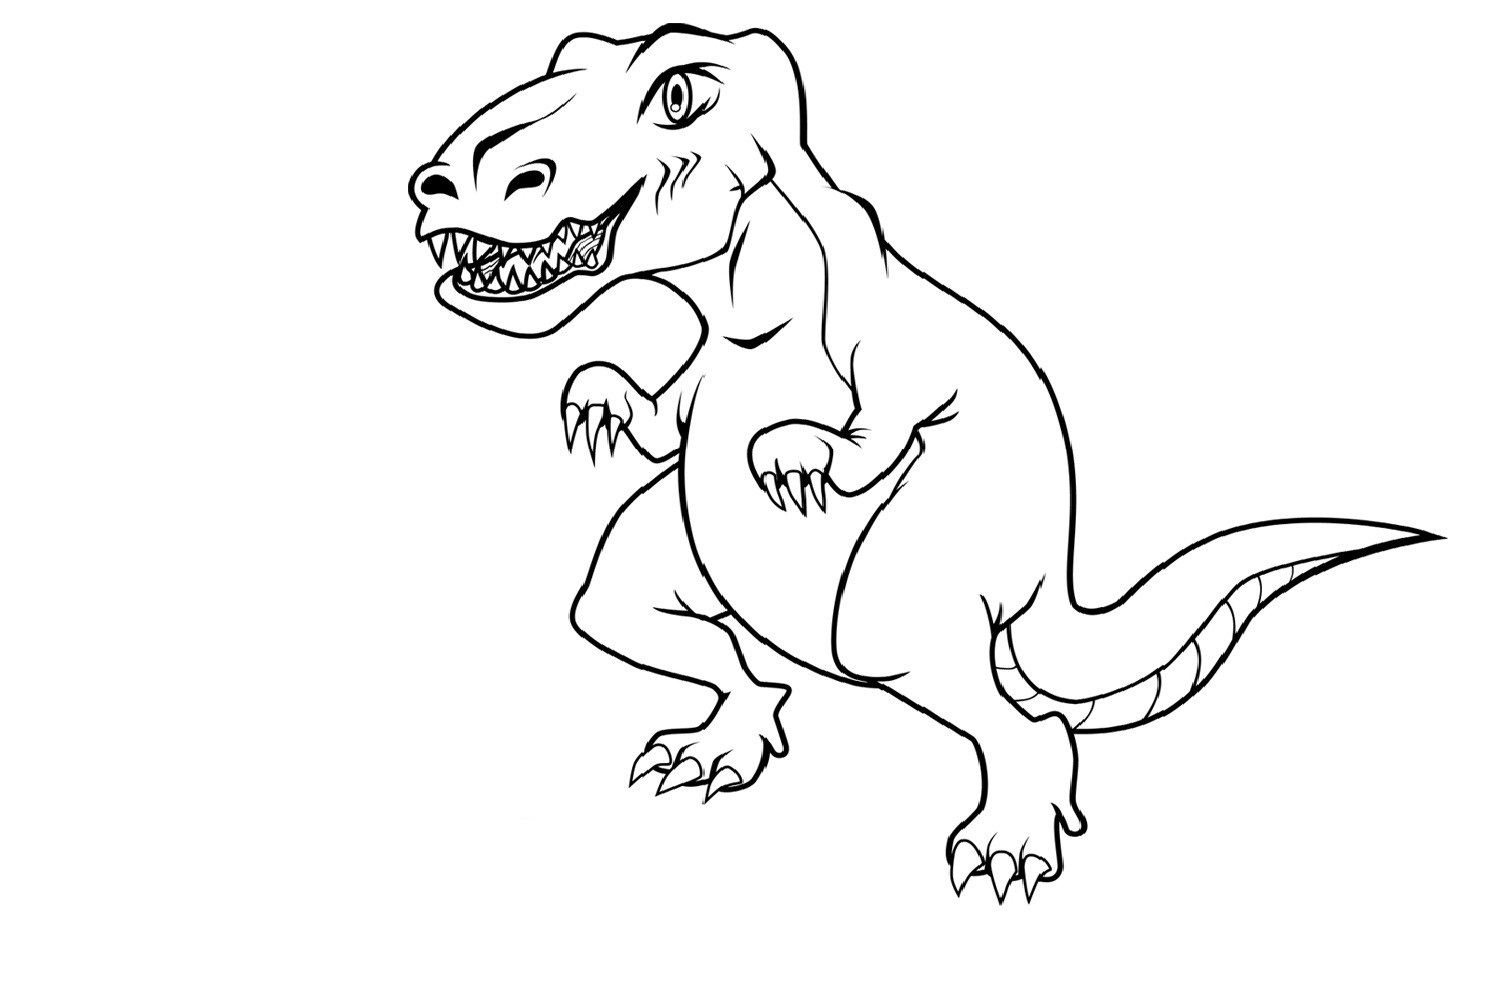 Dinosaur coloring pages to color online - Free Printable Dinosaur Coloring Pages